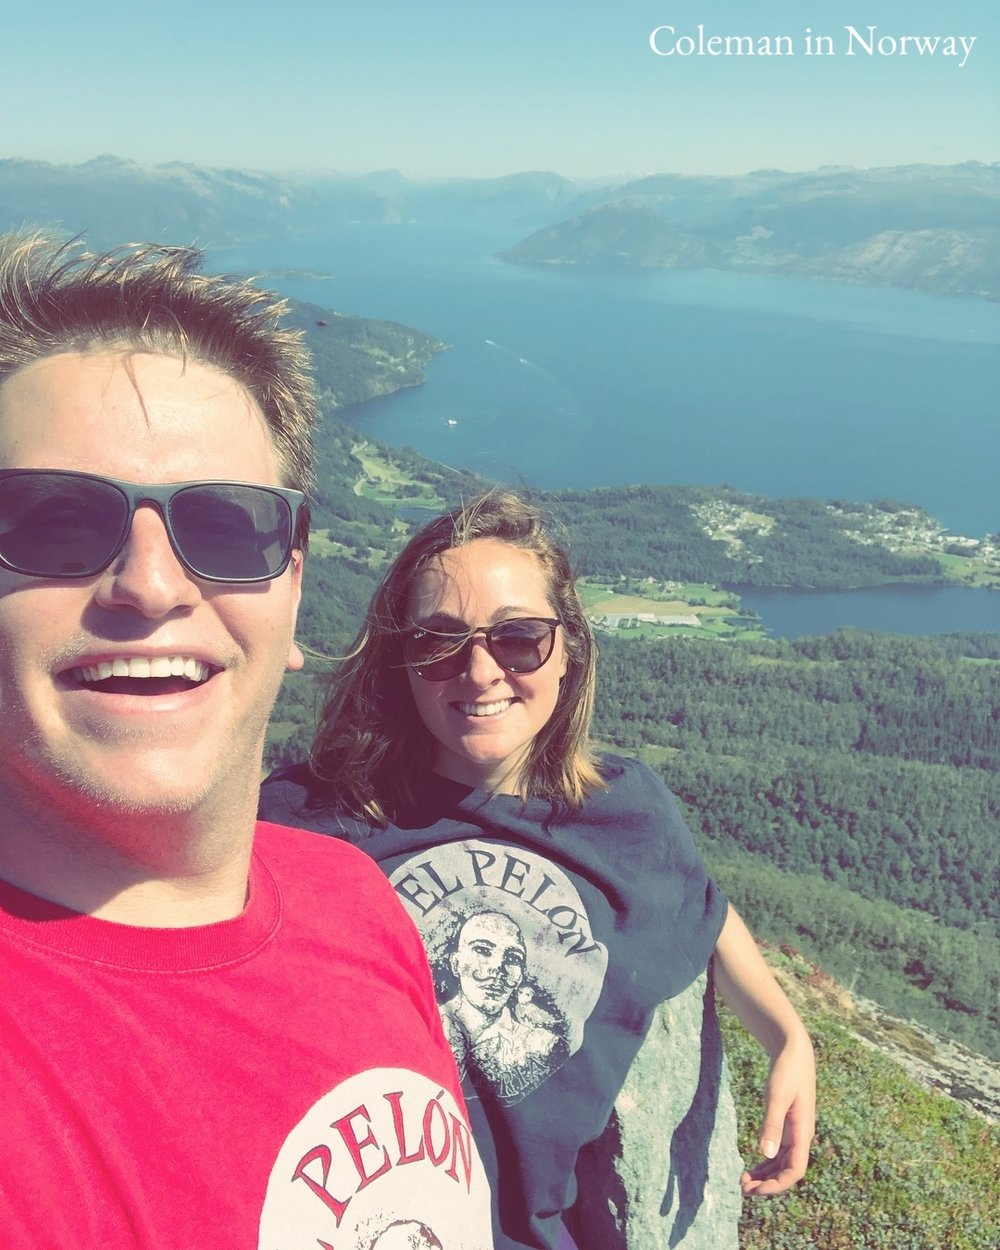 EPT T-Shirt Pic Coleman in Norway.jpeg